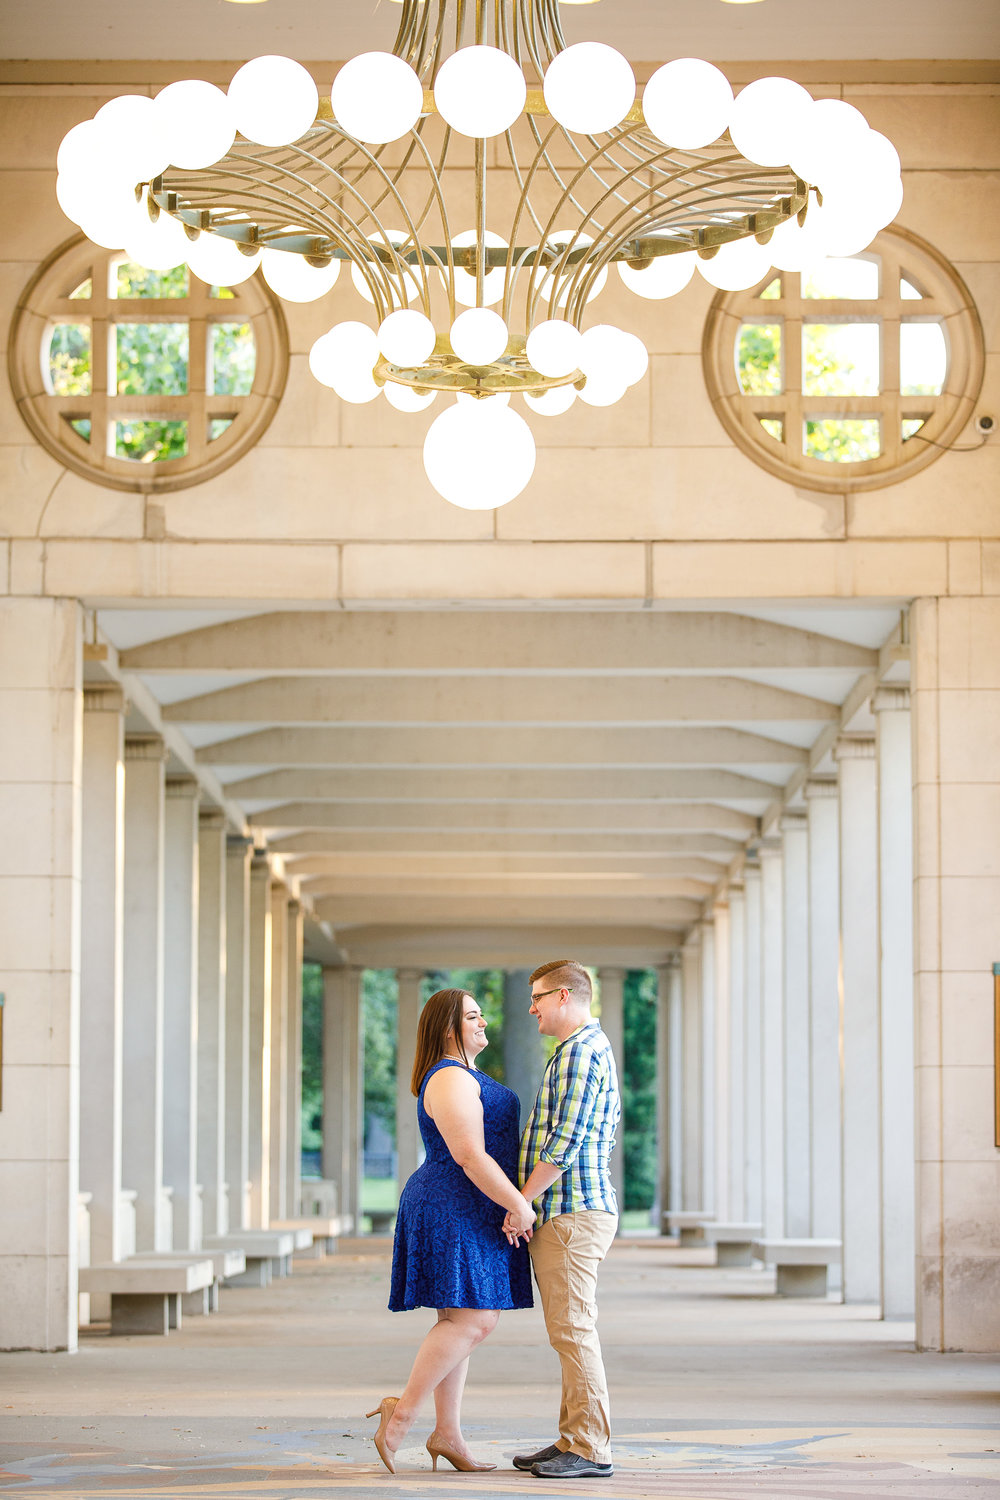 Busch Stadium and Forest Park Engagement Photos by St Louis Wedding Photographers and Videographers Oldani Photography 35.jpg